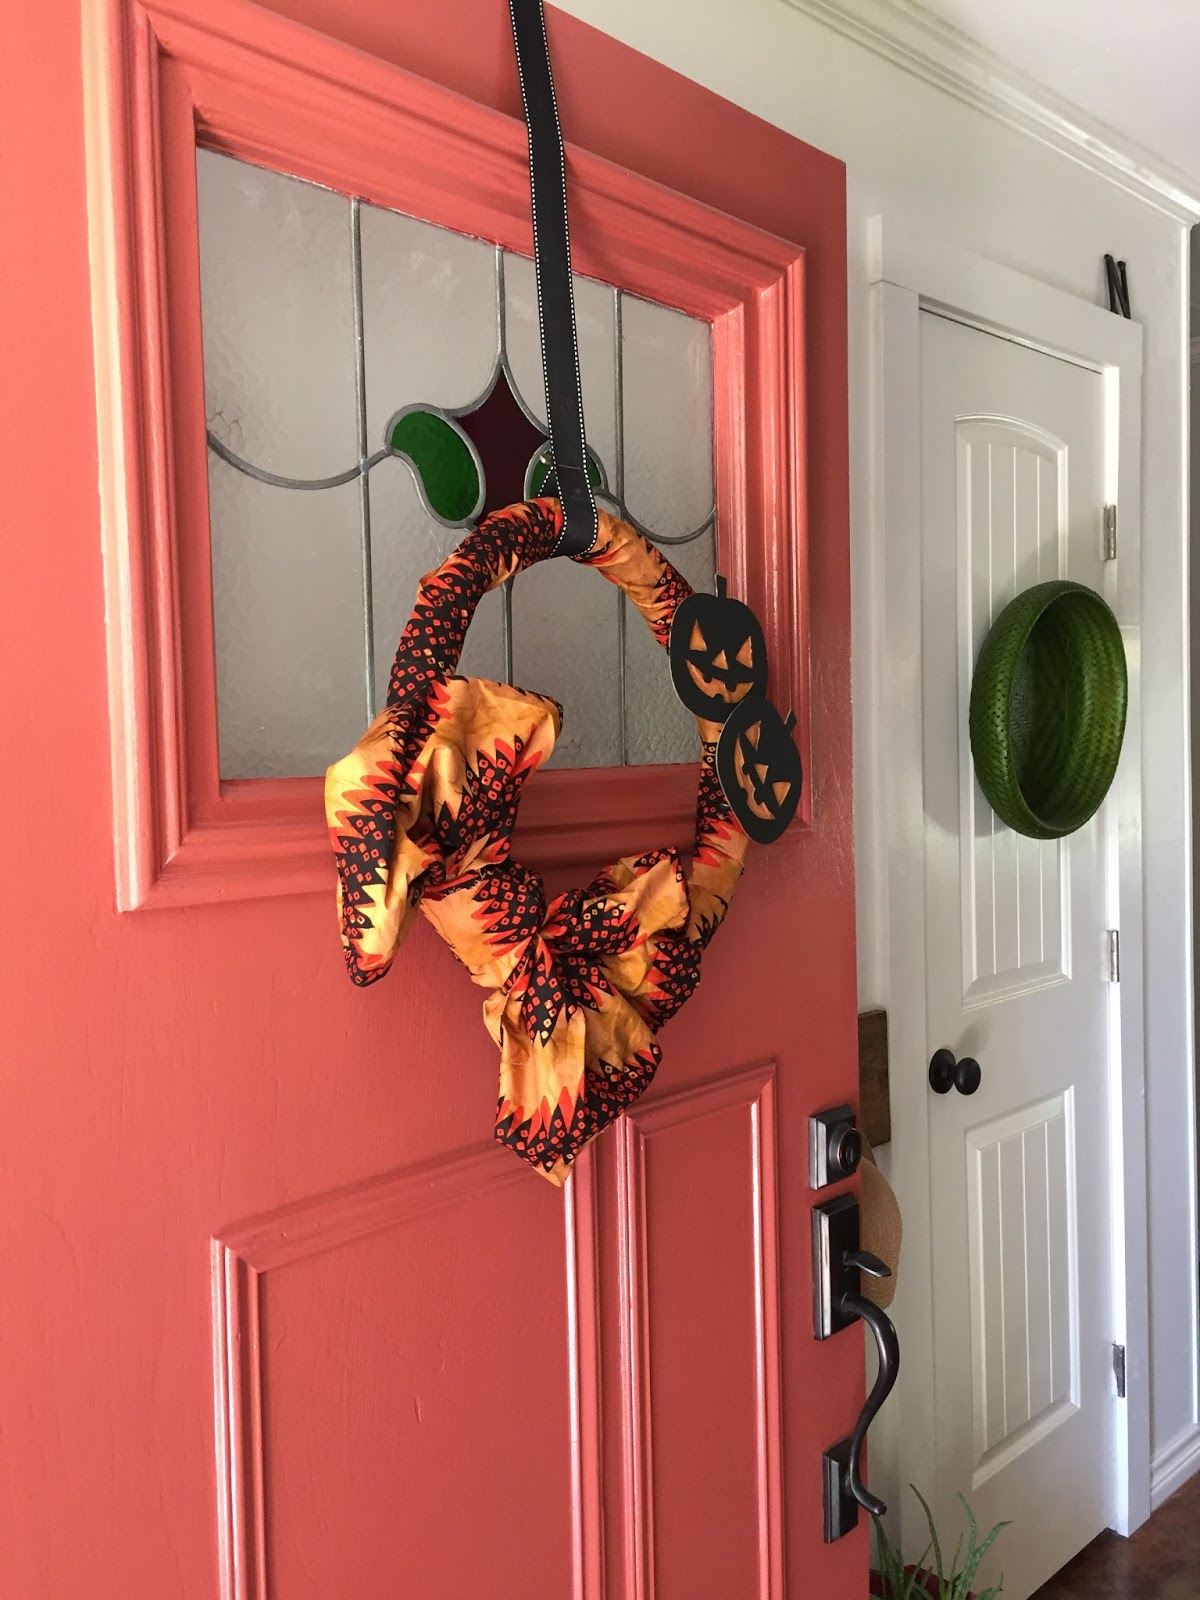 This quick and easy Halloween wreath is a cute addition to your fall decor. Hot glue, wreath form and fabric and you could have one for any holiday or season.